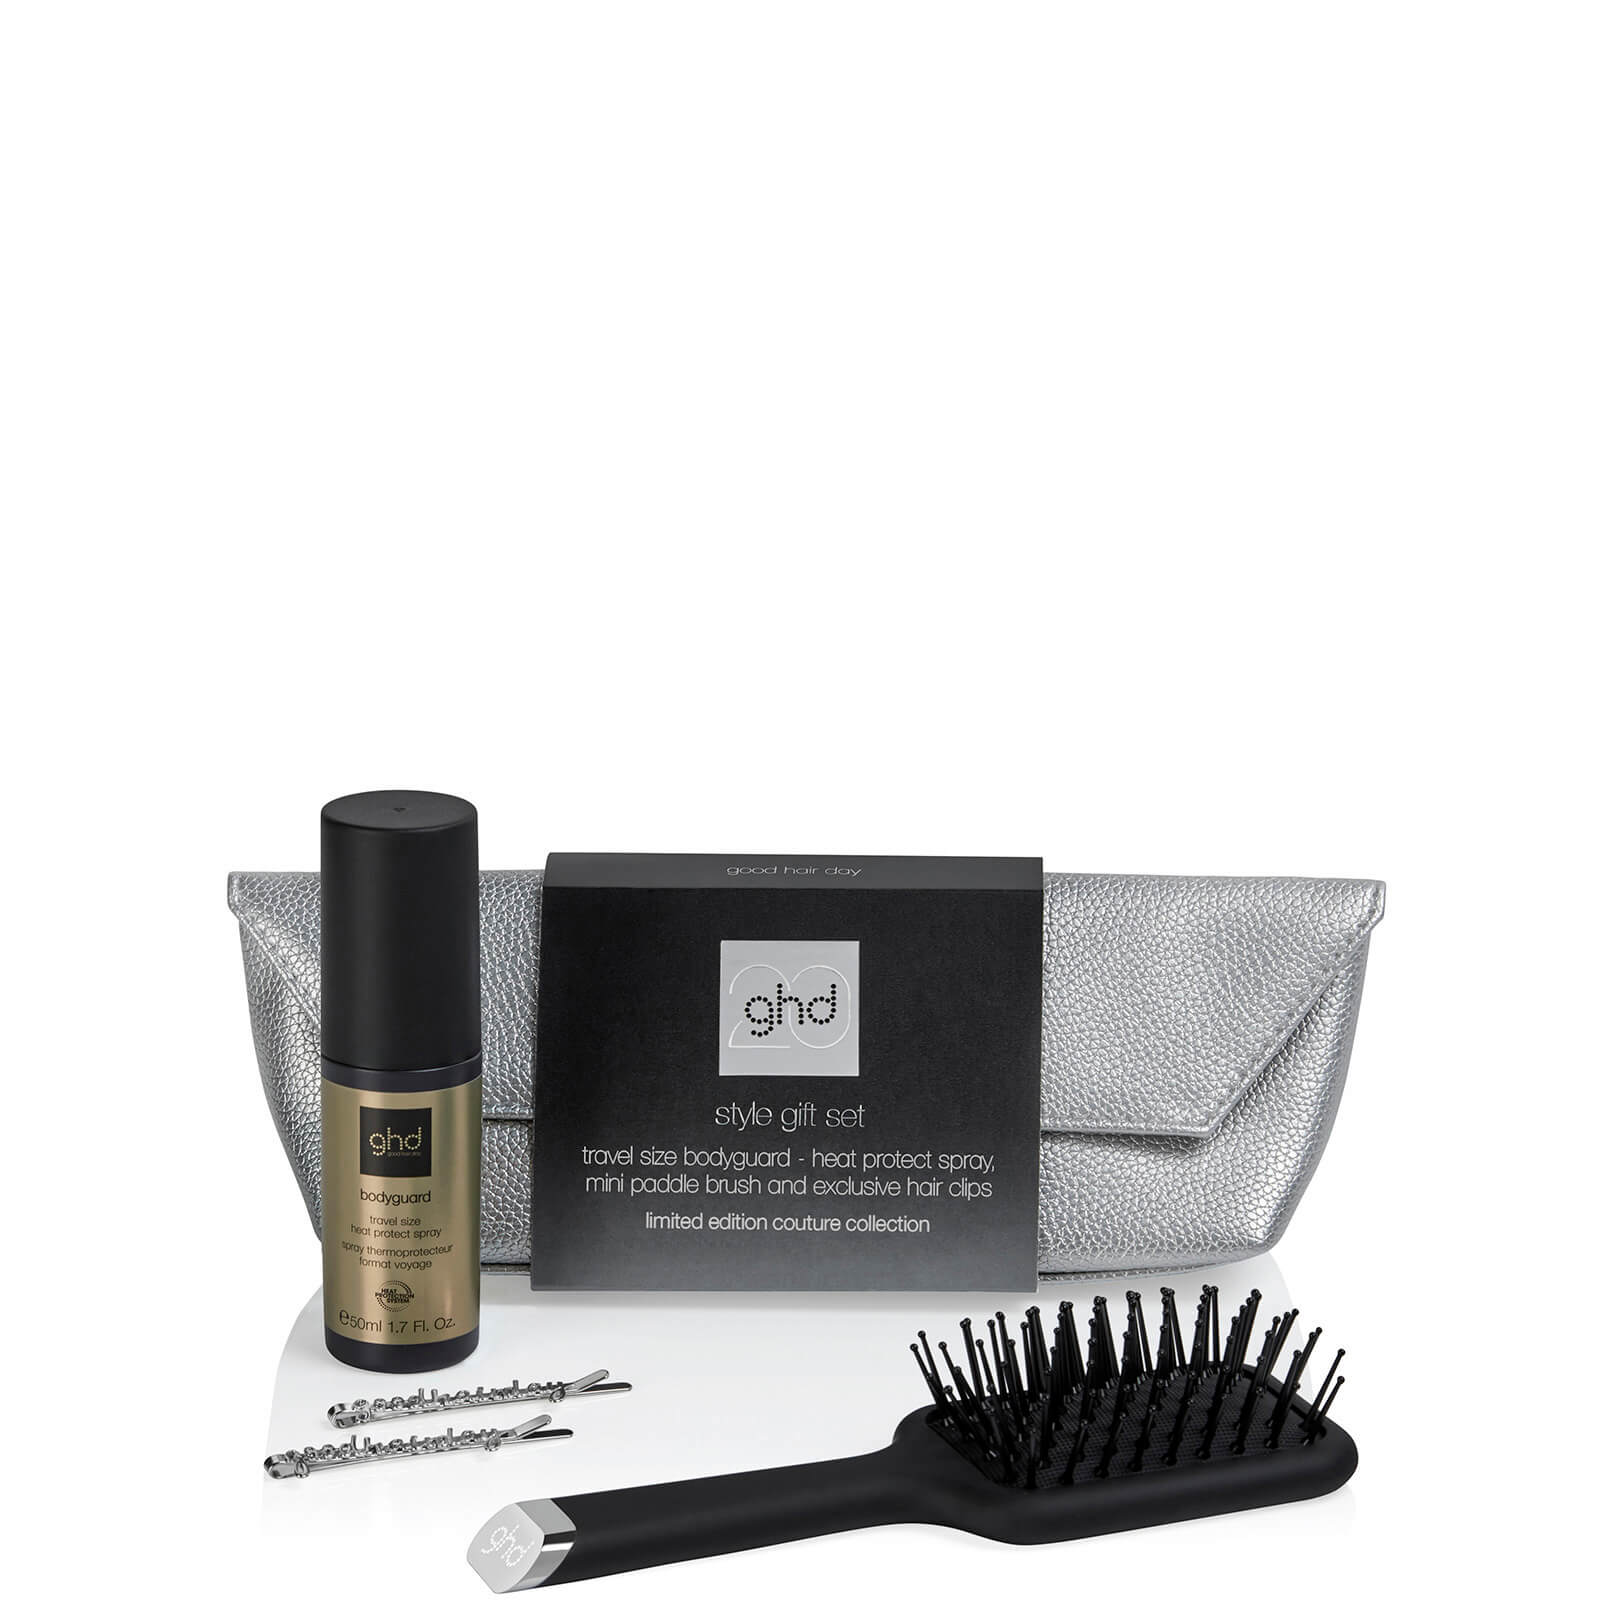 ghd 20th anniversary Style gift Set - Limited Edition